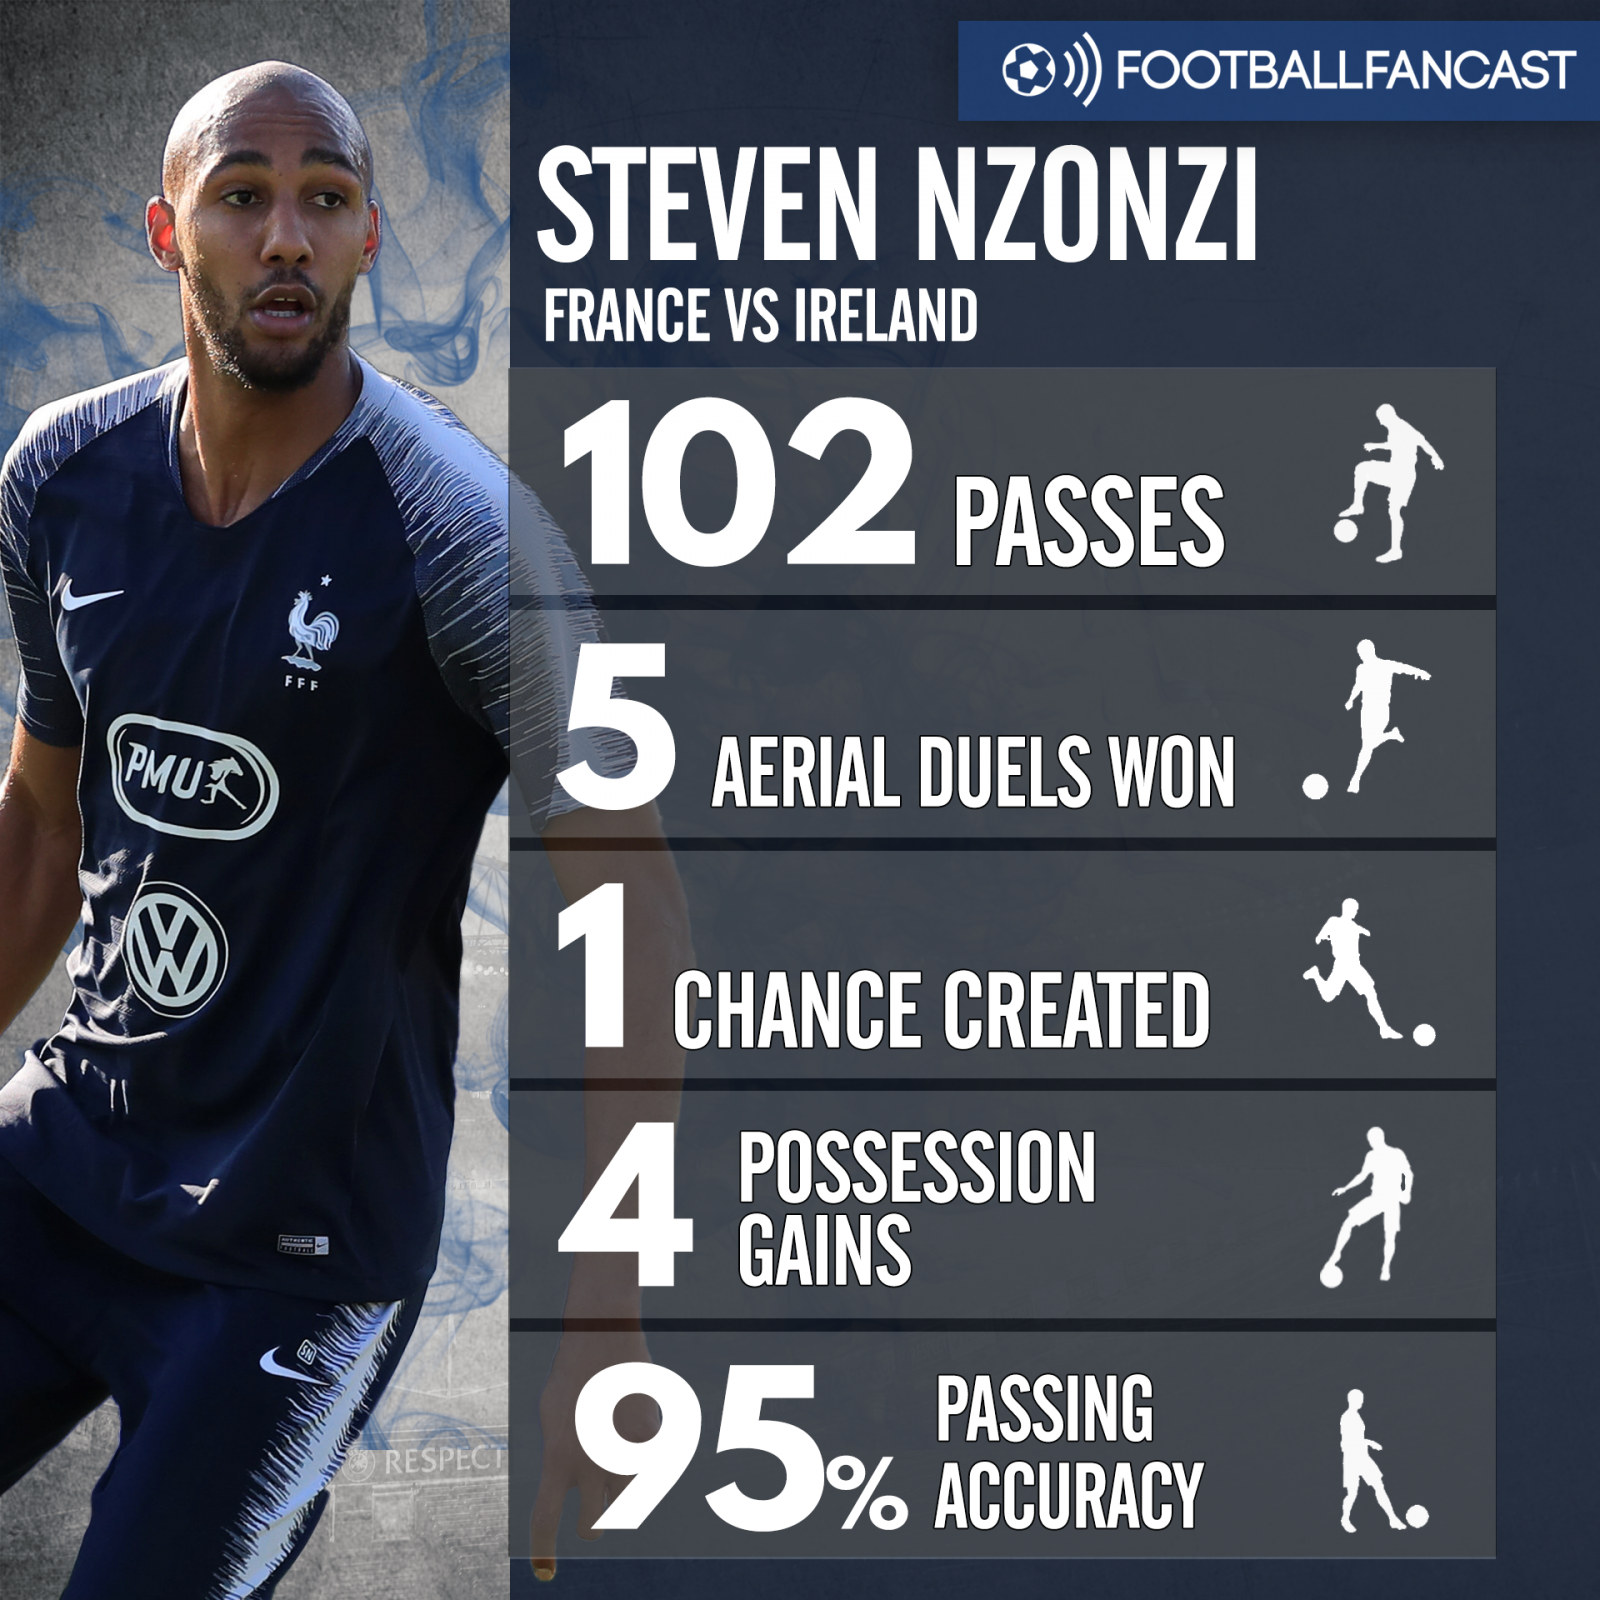 Steven Nzonzi's stats from France's win over Ireland